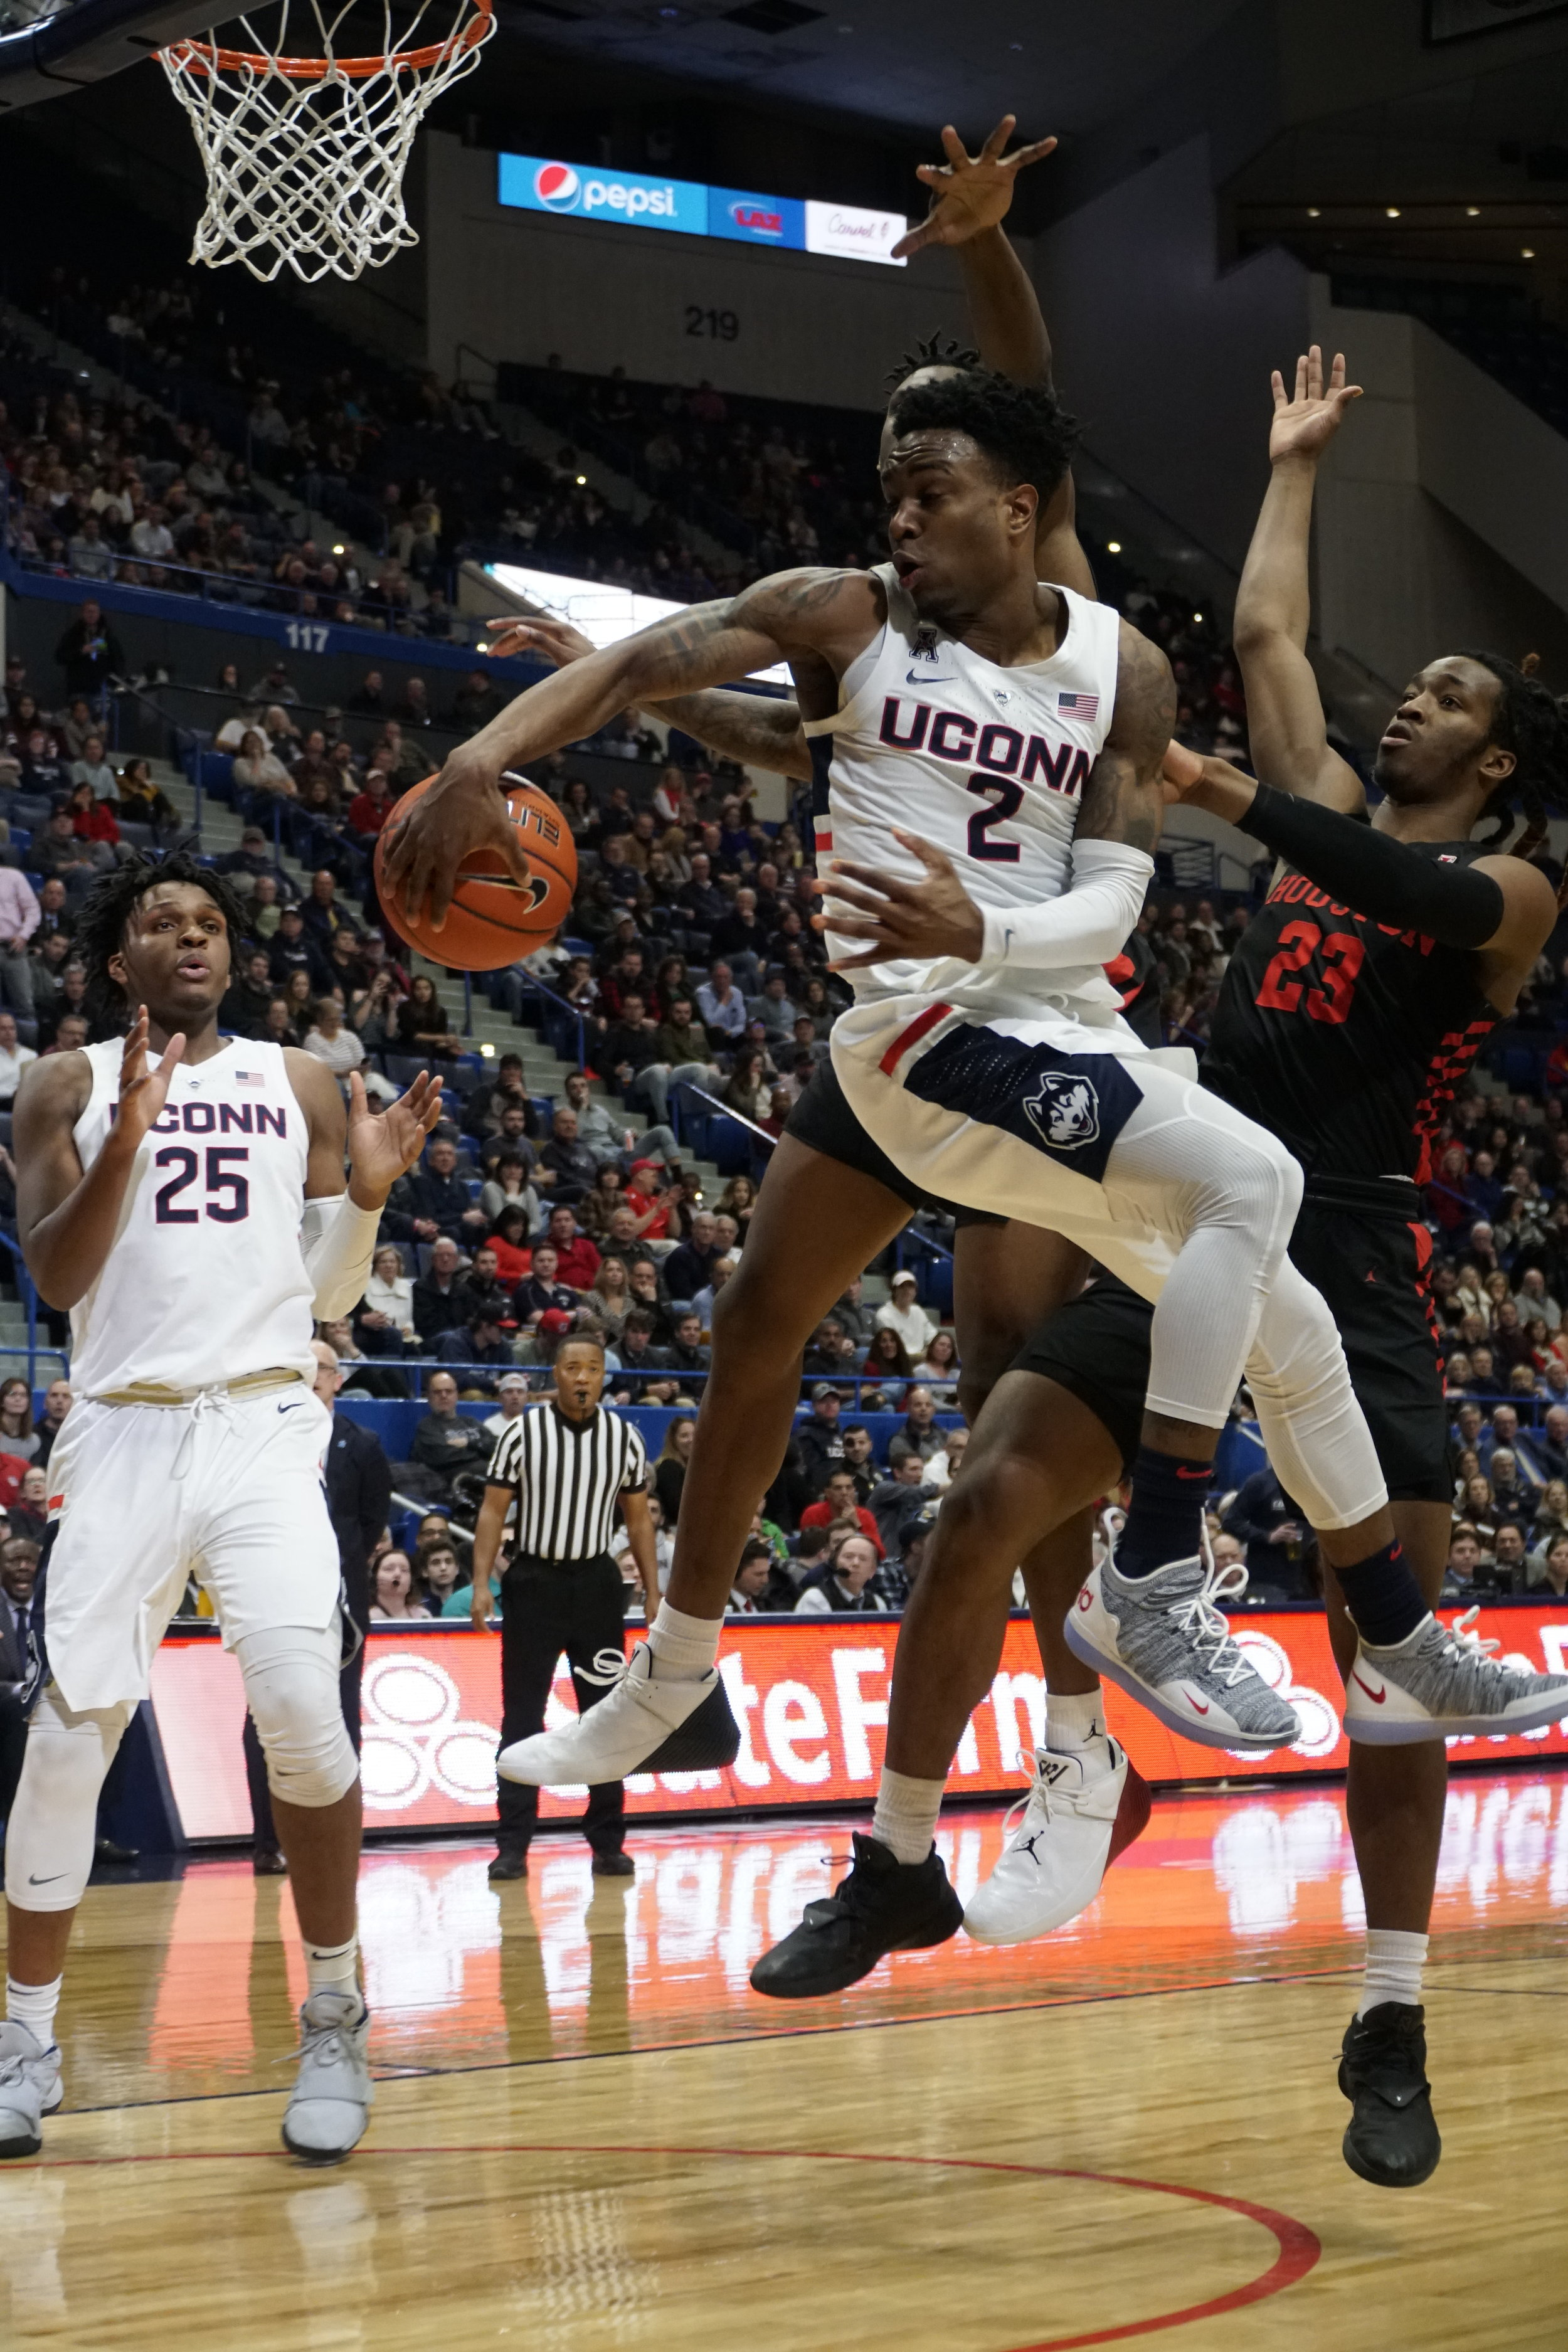 The UConn Huskies took a tough loss at against the Houston Cougars 63-71. Christian Vital (1) and Sidney Wilson (15) lead the team with Sidney scoring a total of 12 points with 2 3-pointers.Their next home game is against University of Cincinnati on 2/24 at the XL Center. (photo by Eric Wang/The Daily Campus)